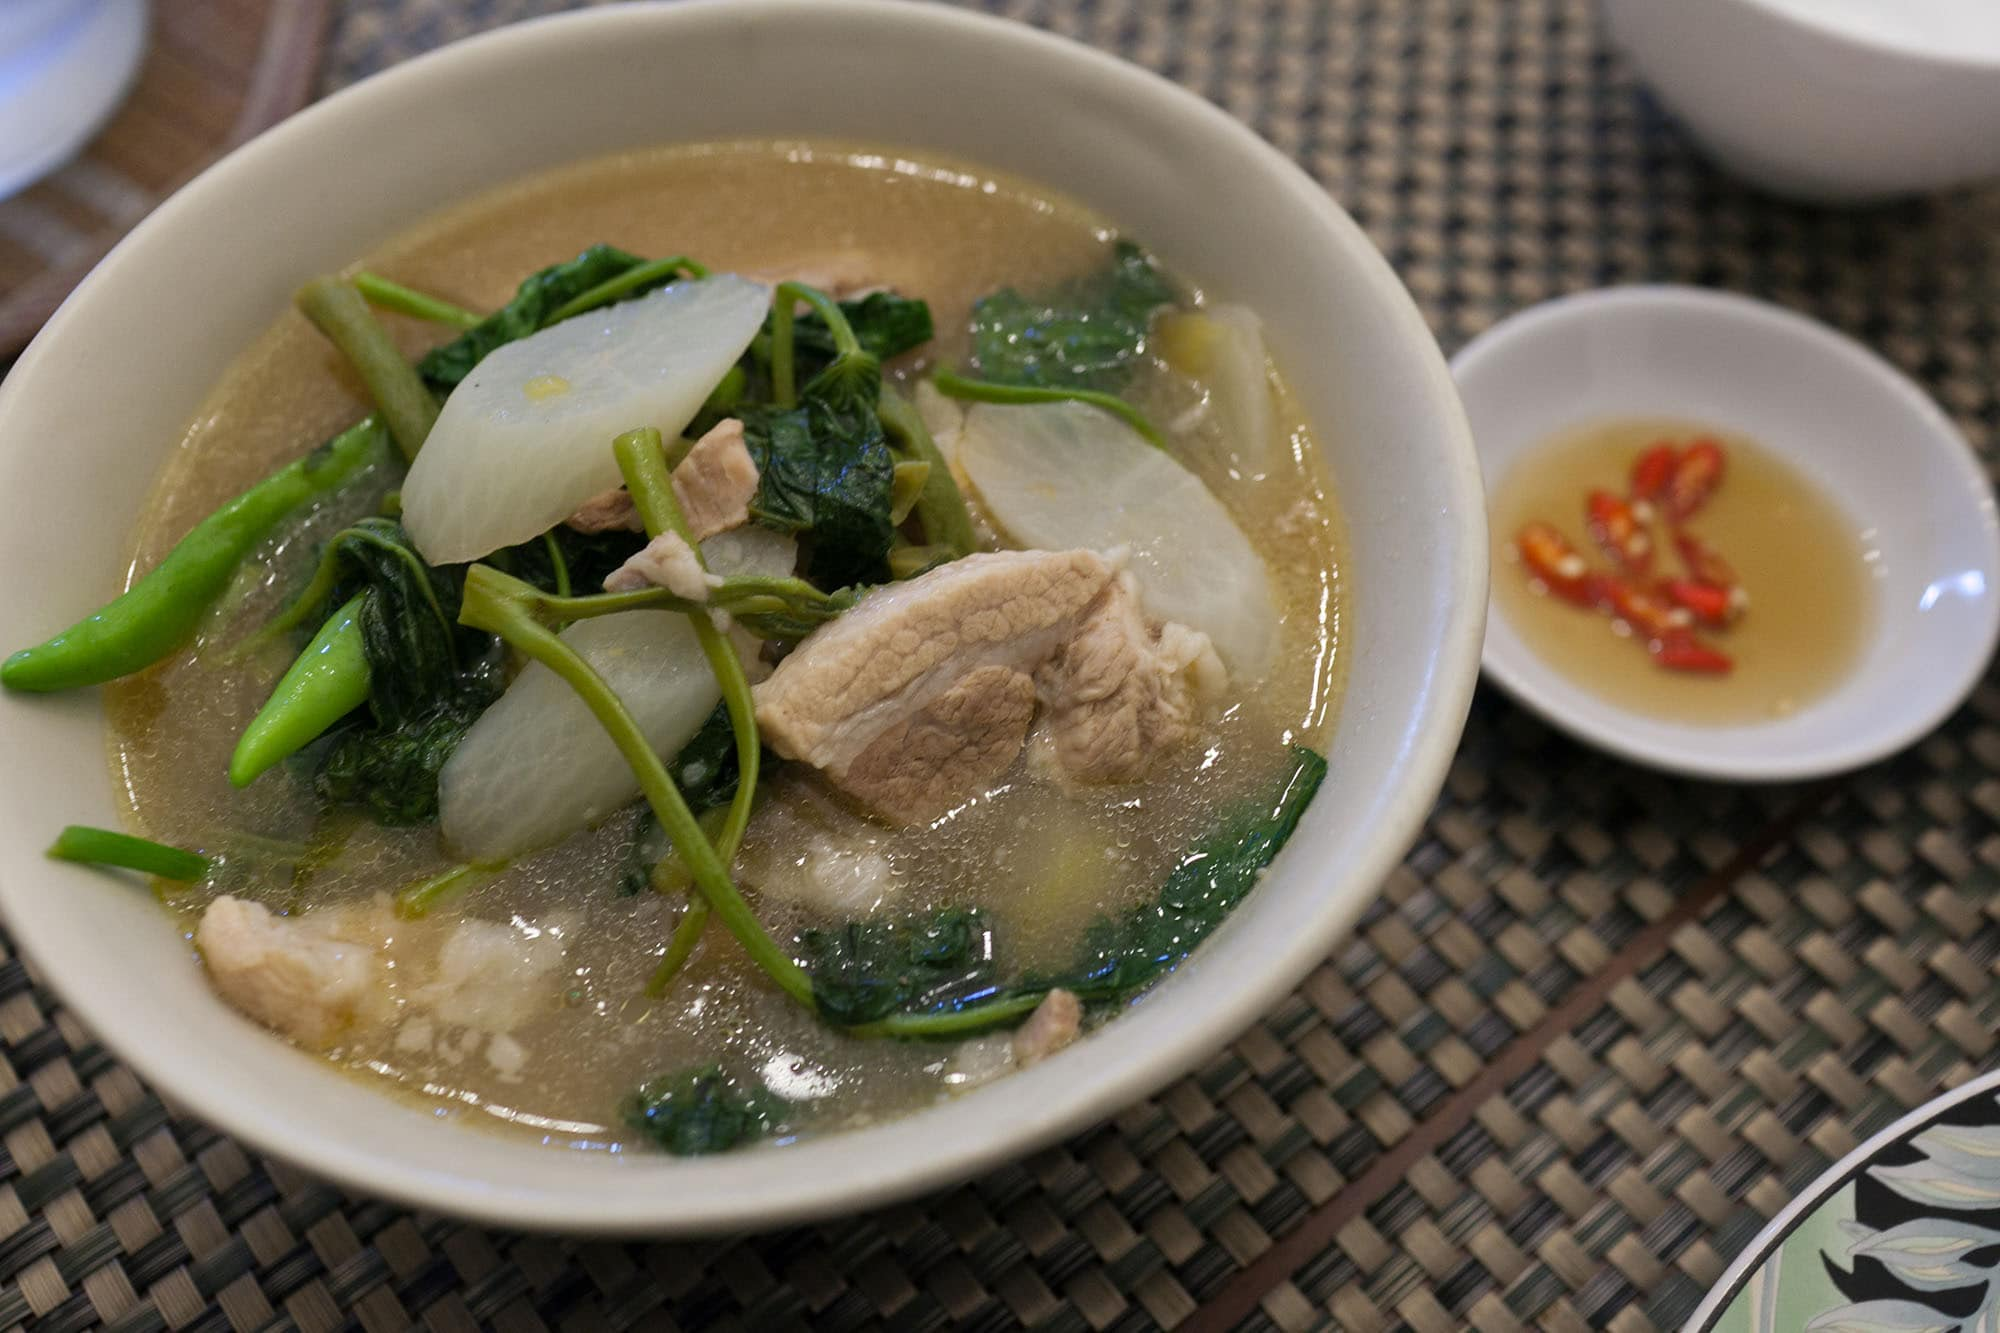 Food in the Philippines: What I ate in The Philippines. Pork sinigang in Manila, Philippines.